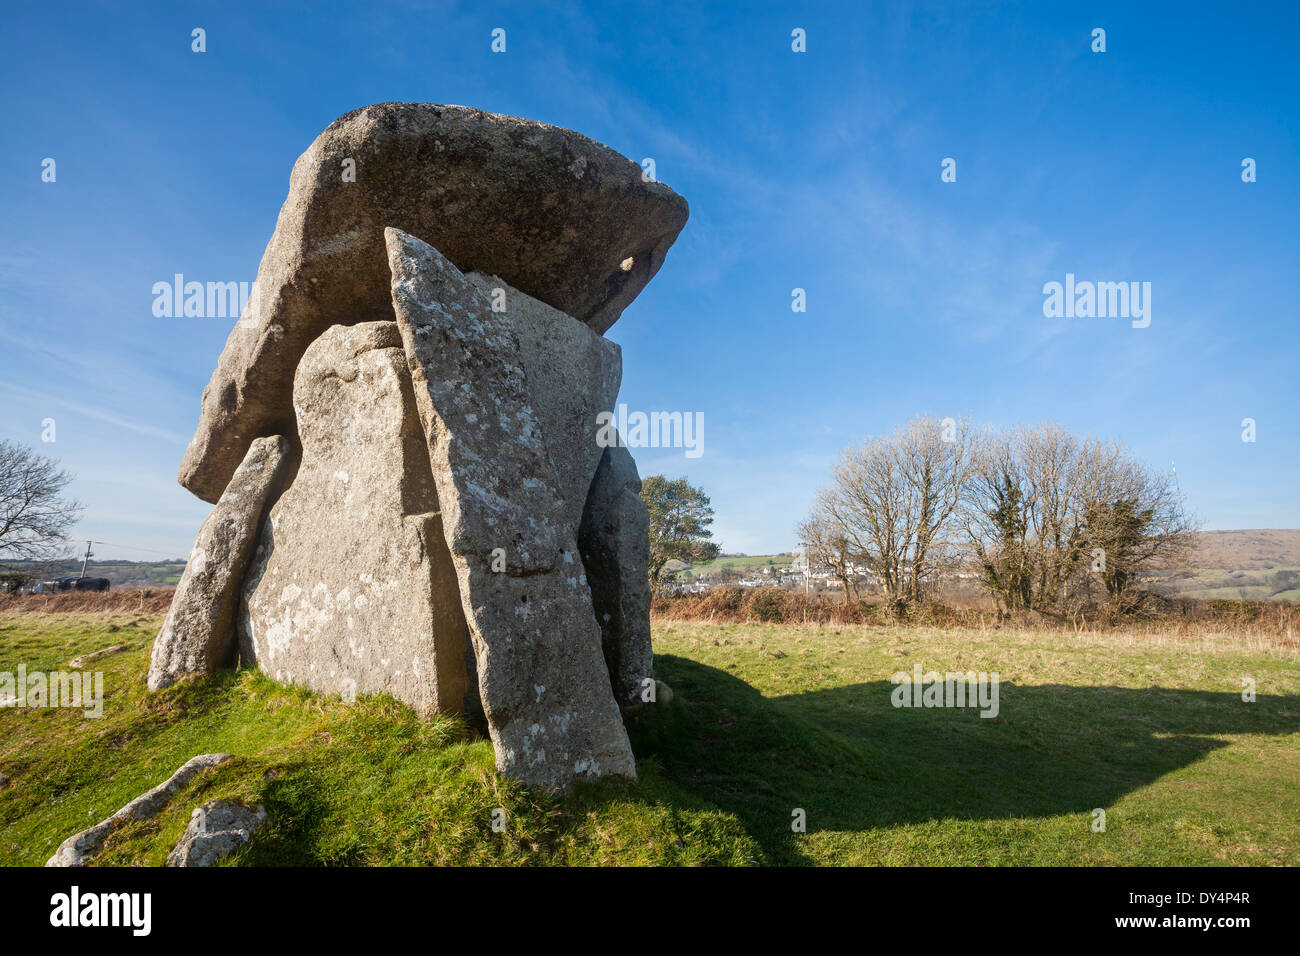 Trethevy Quoit a well preserved Neolithic dolmen burial chamber located near St Cleer and Darite in Cornwall, England UK Europe - Stock Image